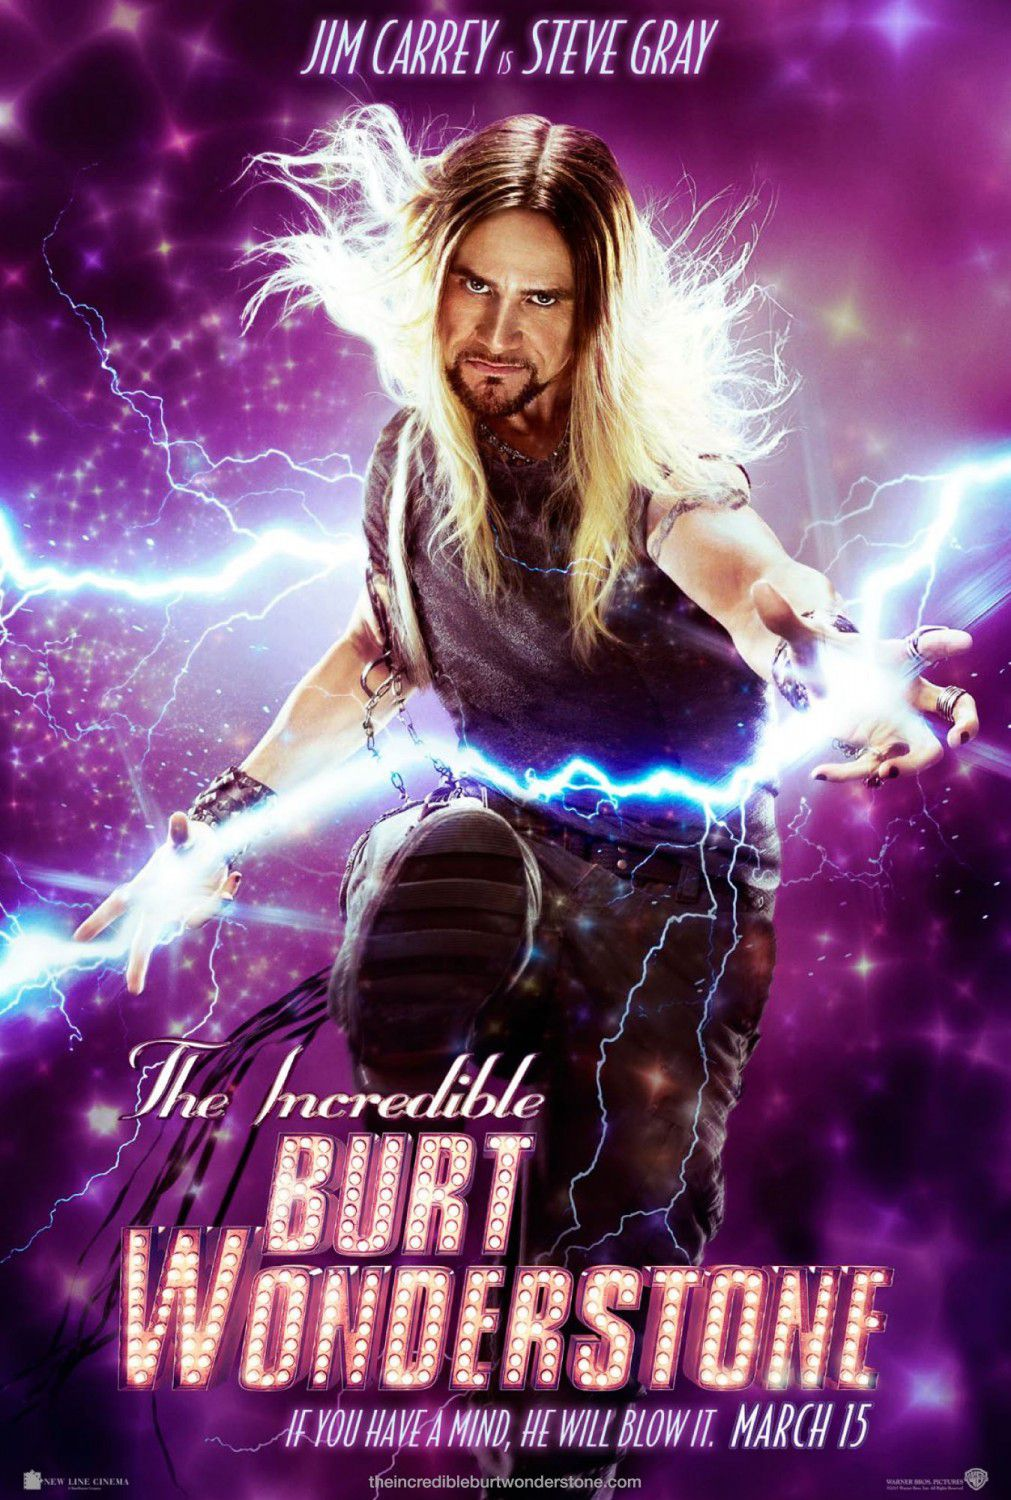 Incredible Burt Wonderstone - Jim Carrey is Steve Gray